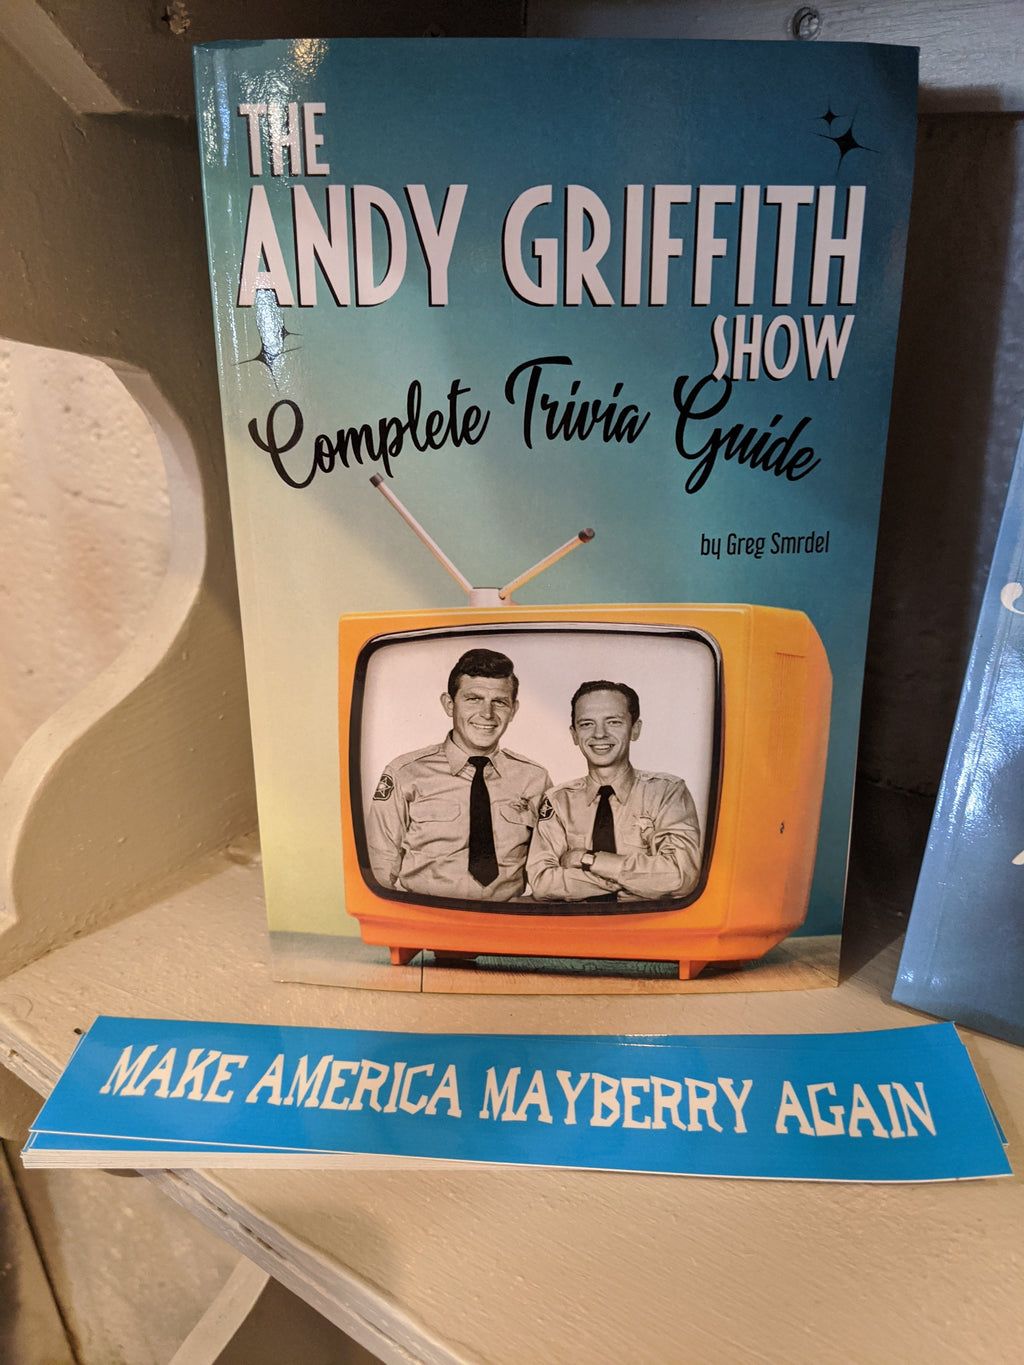 The Andy Griffith Show Complete Trivia Guide by Greg Smrdel *signed copy*